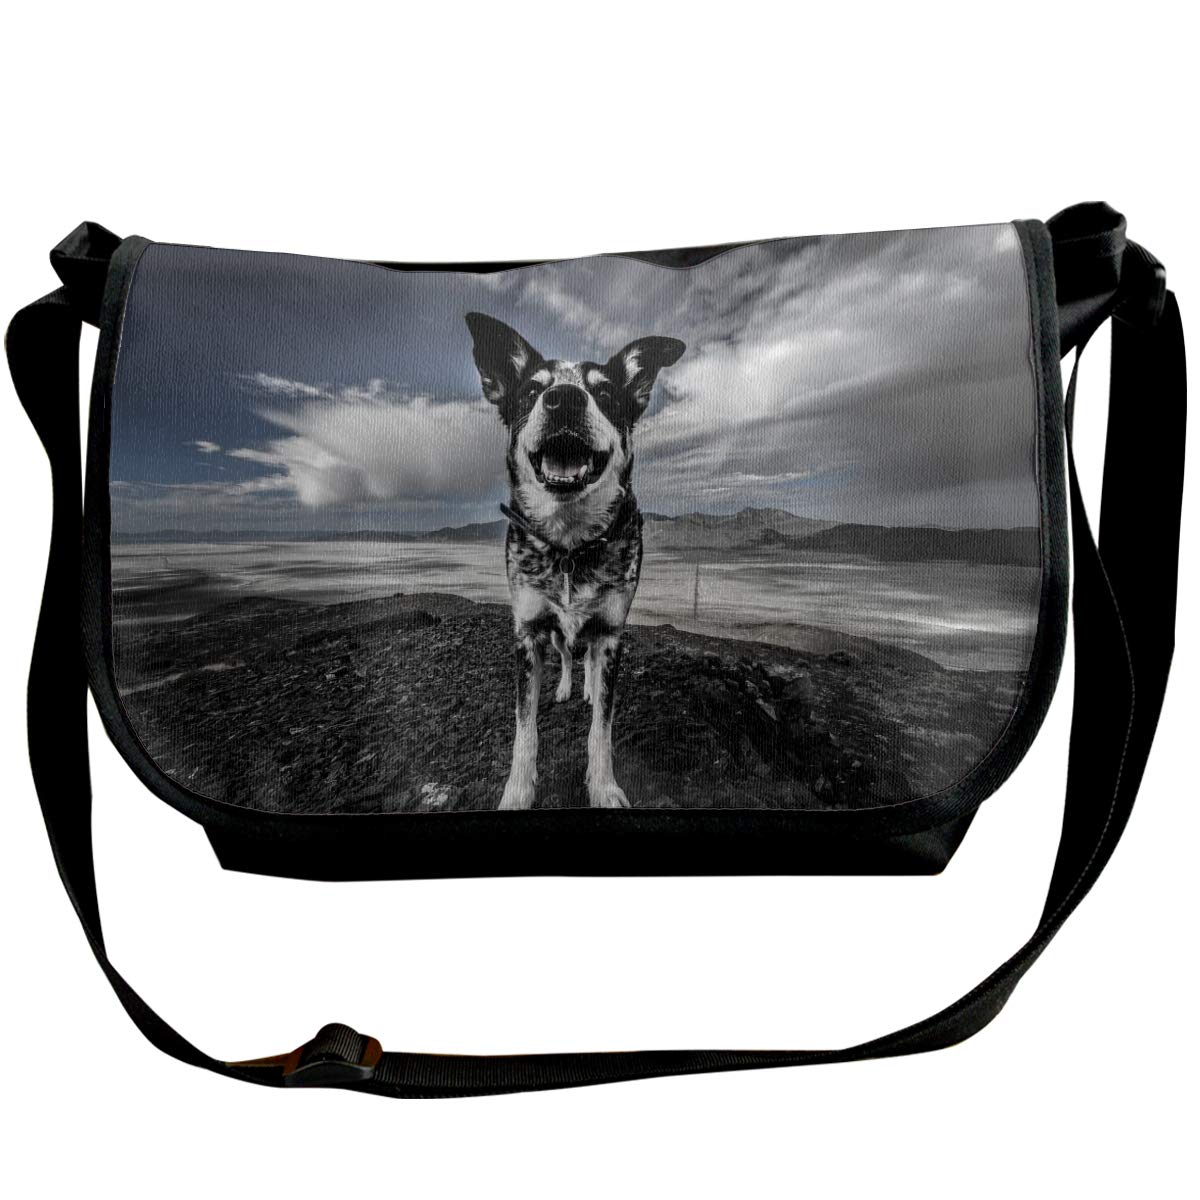 Taslilye Dog Spotted Mountains Customized Wide Crossbody Shoulder Bag For Men And Women For Daily Work Or Travel